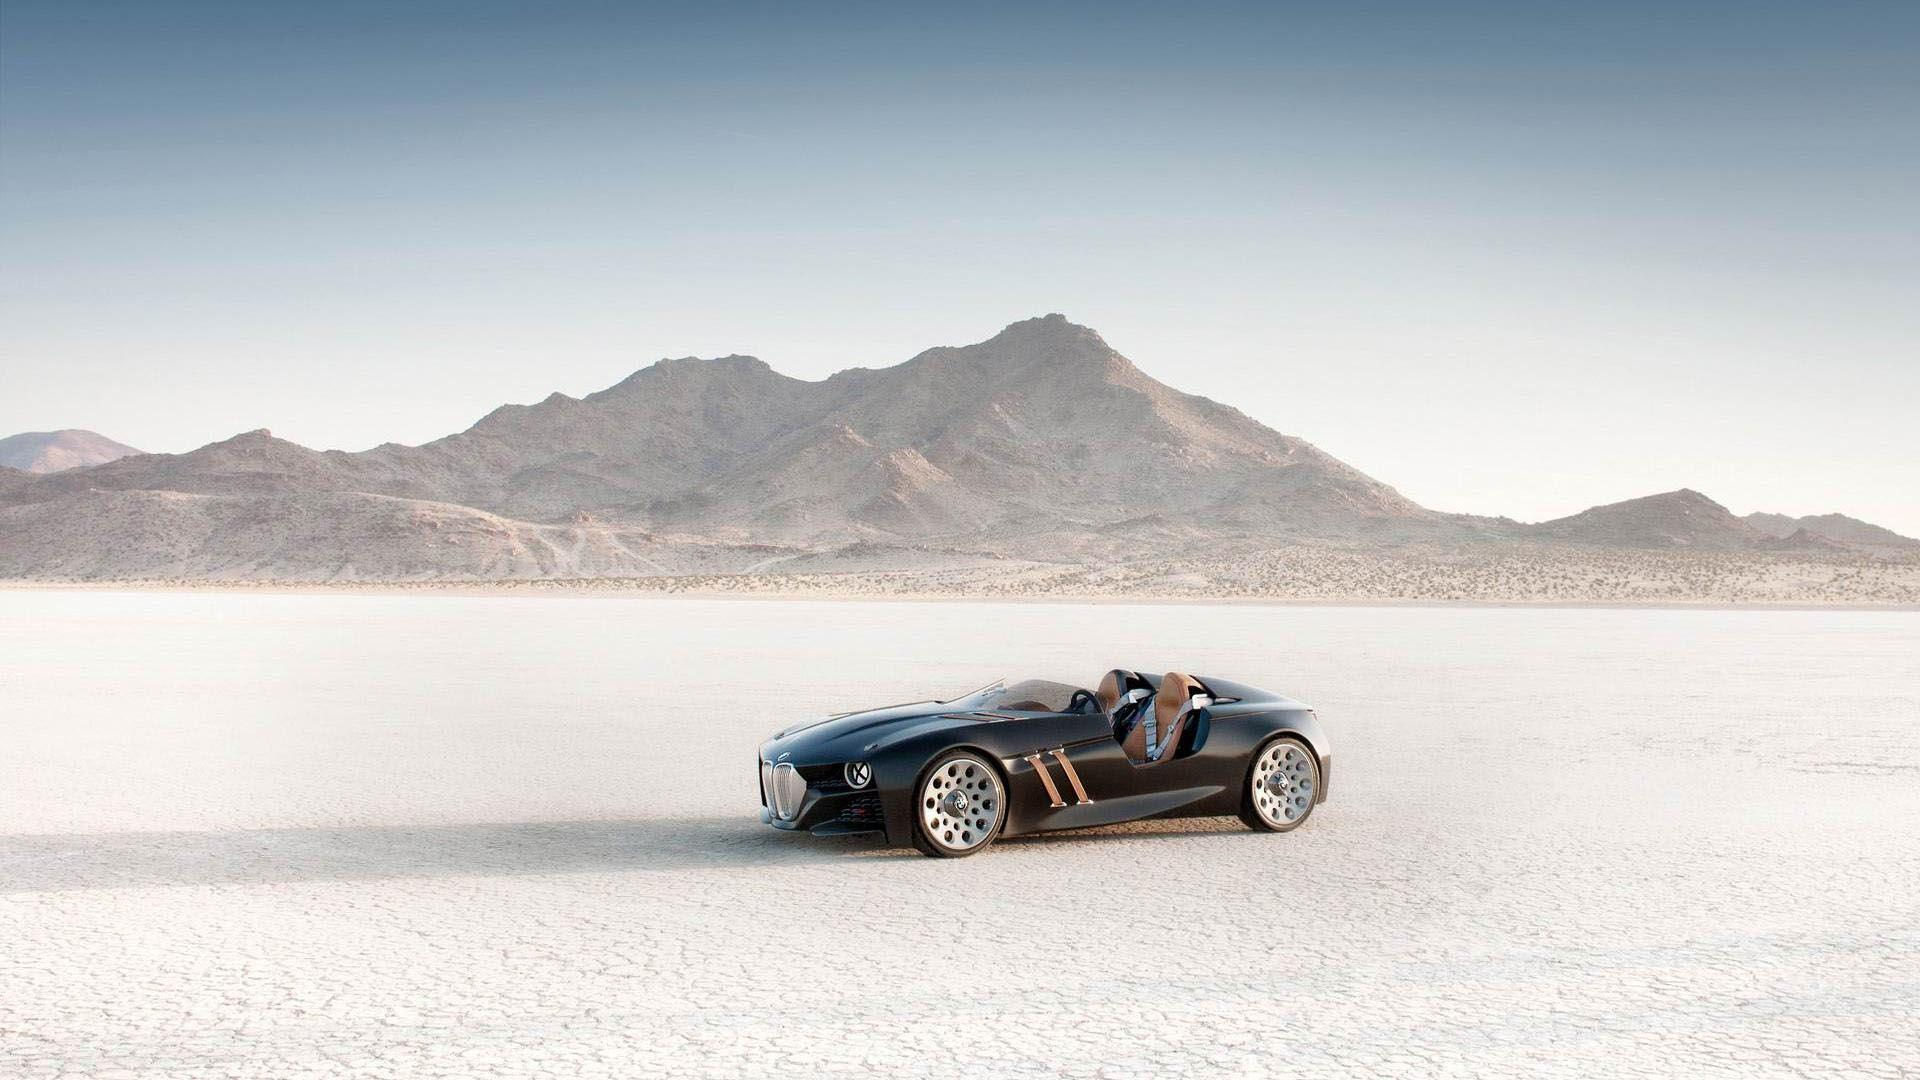 Nothing found for Bmw Sport Cars Wallpaper Hd 1920X1080Px ...